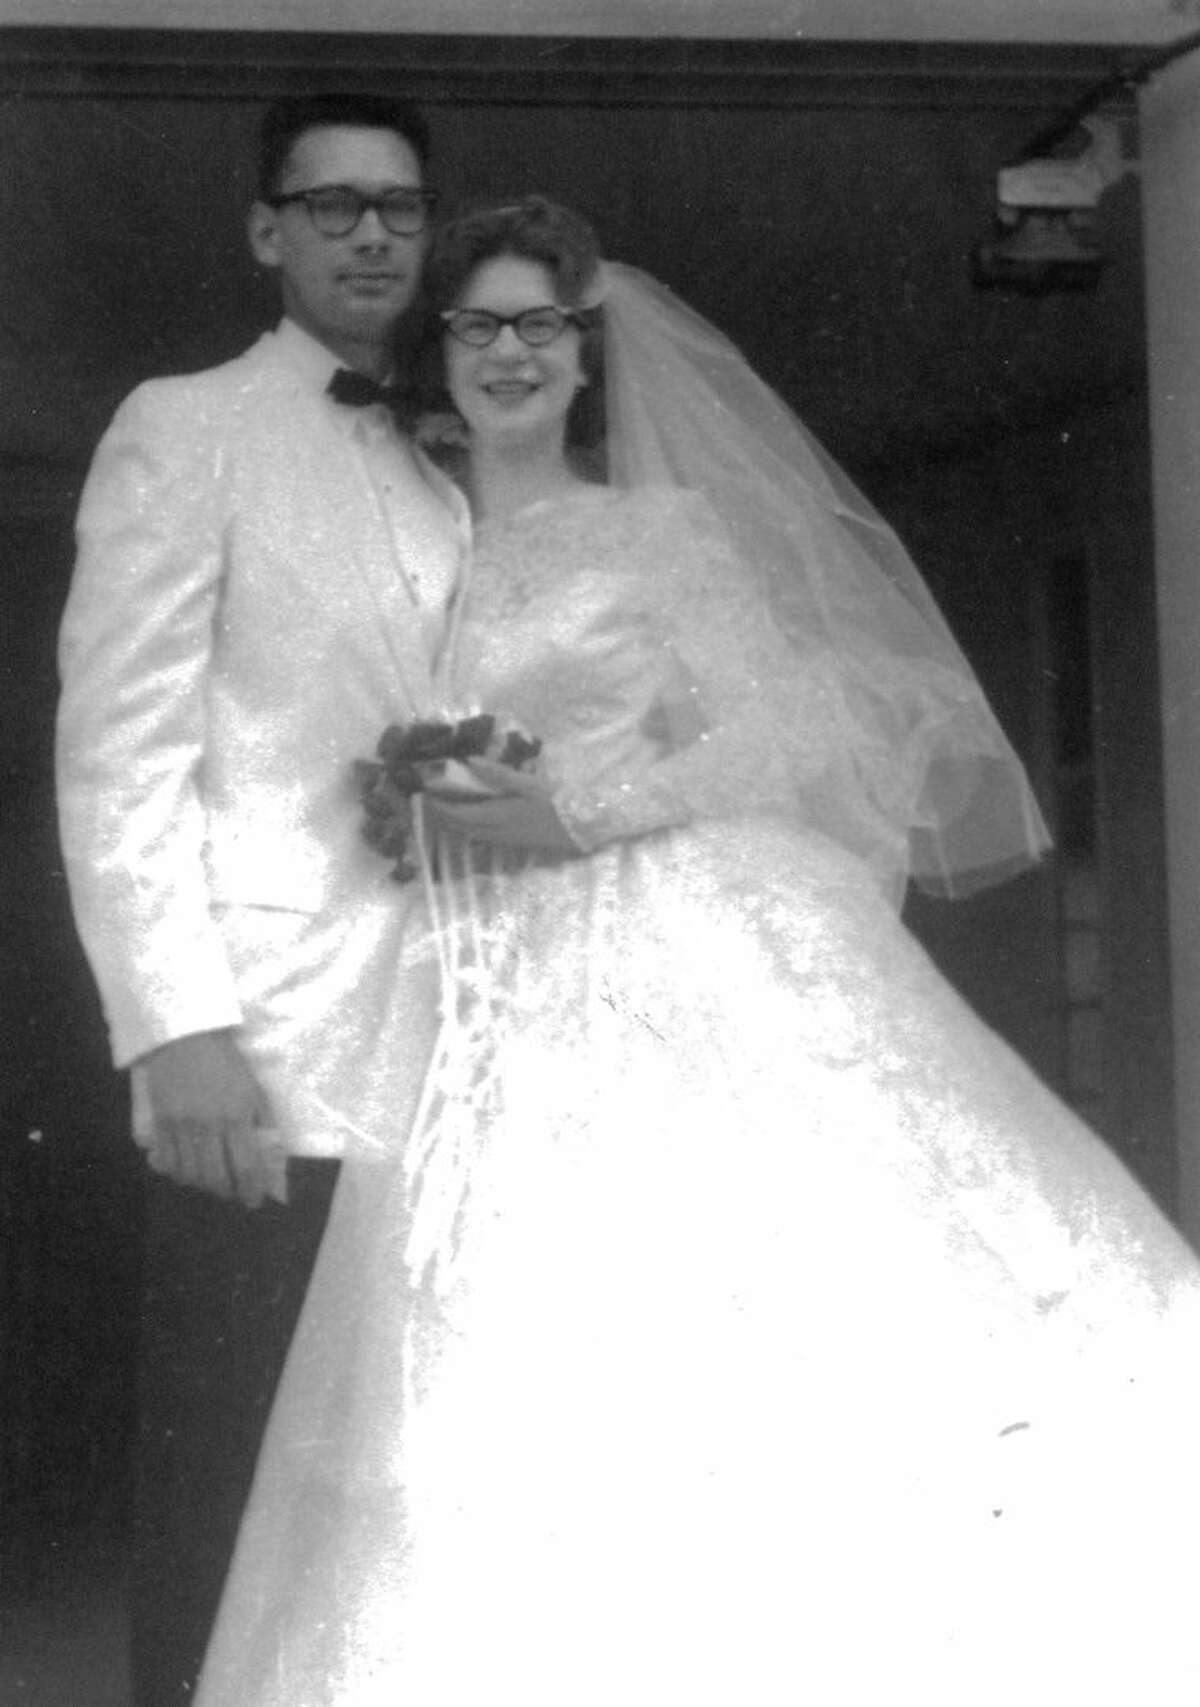 Don Boxey and Sharon Neiner were the first couple to be married in the new St. Agnes Catholic Church in Sanford. Father Robert Shine officiated at their wedding on June 18, 1960.